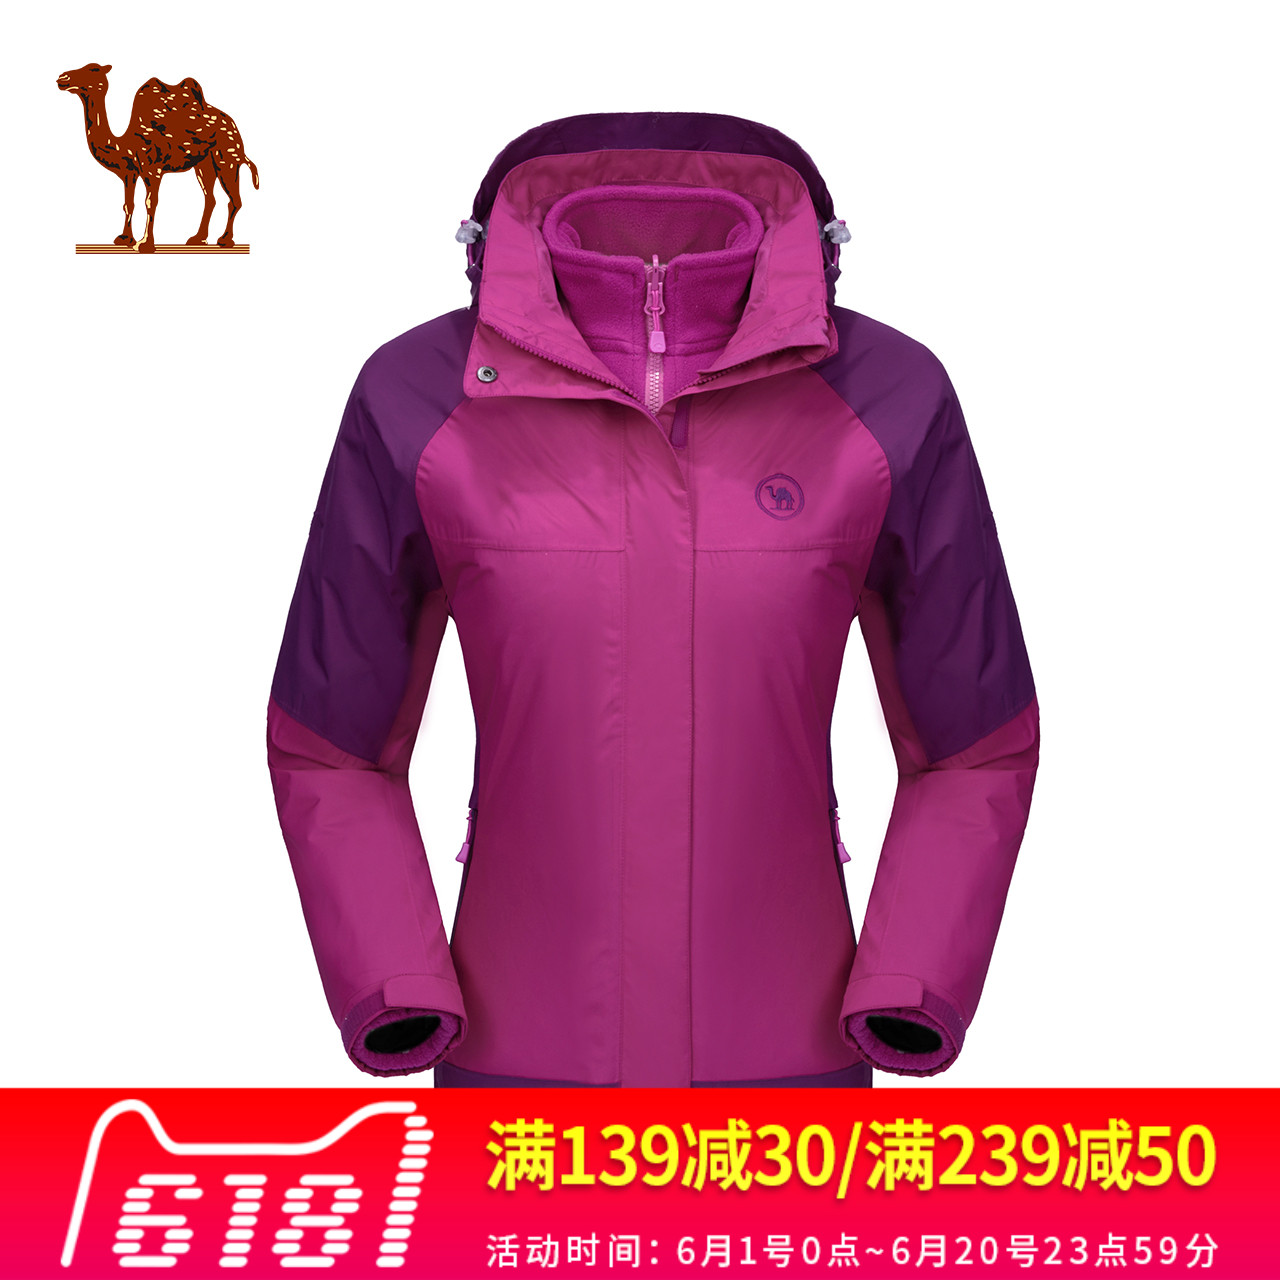 59a4fb808b Camel outdoor autumn and winter women s three-in-one jacket warm and  windproof two